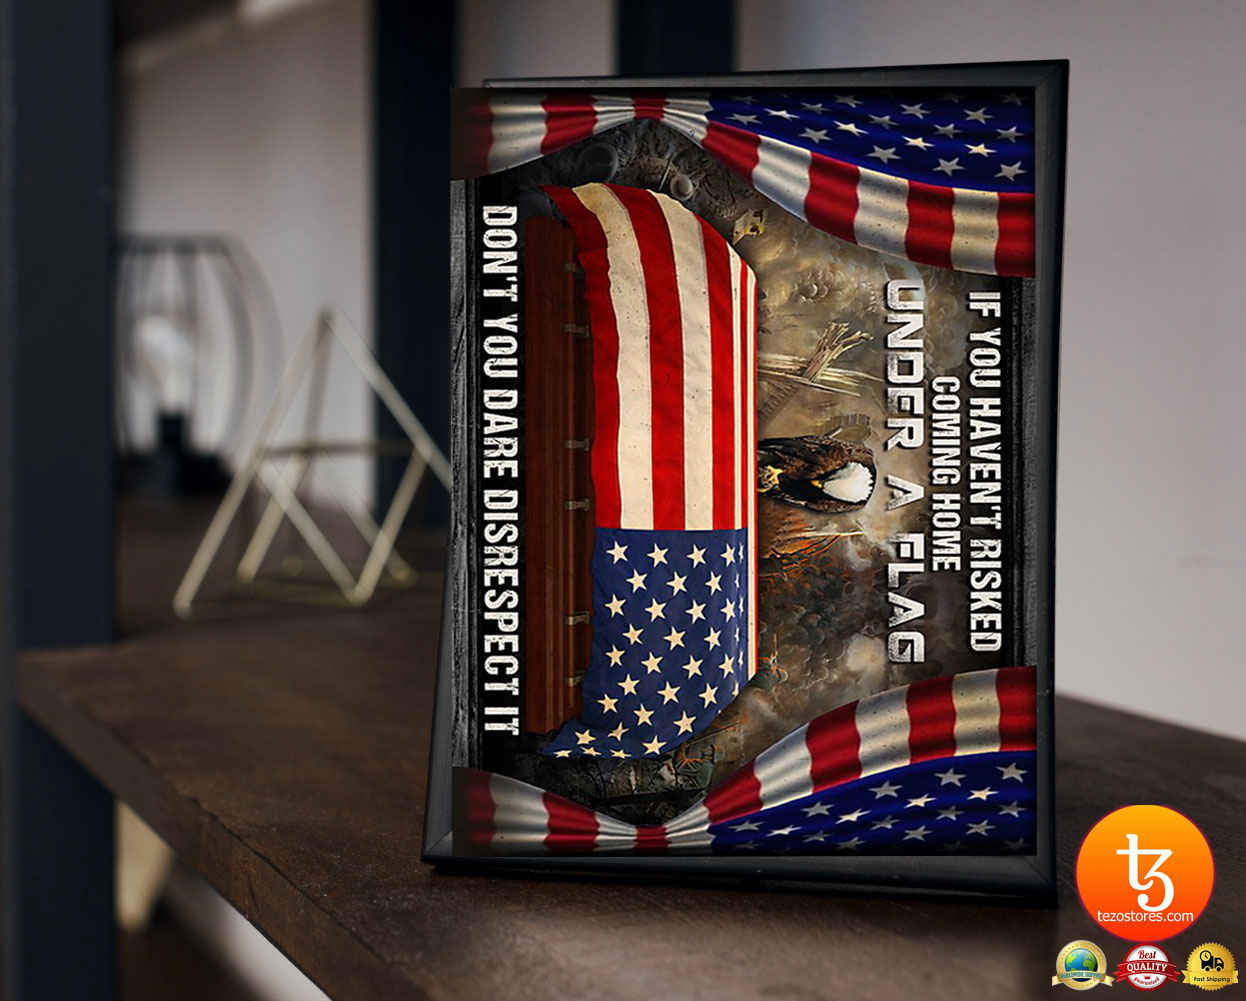 Veteran If you haven't risked coming home under a flag poster